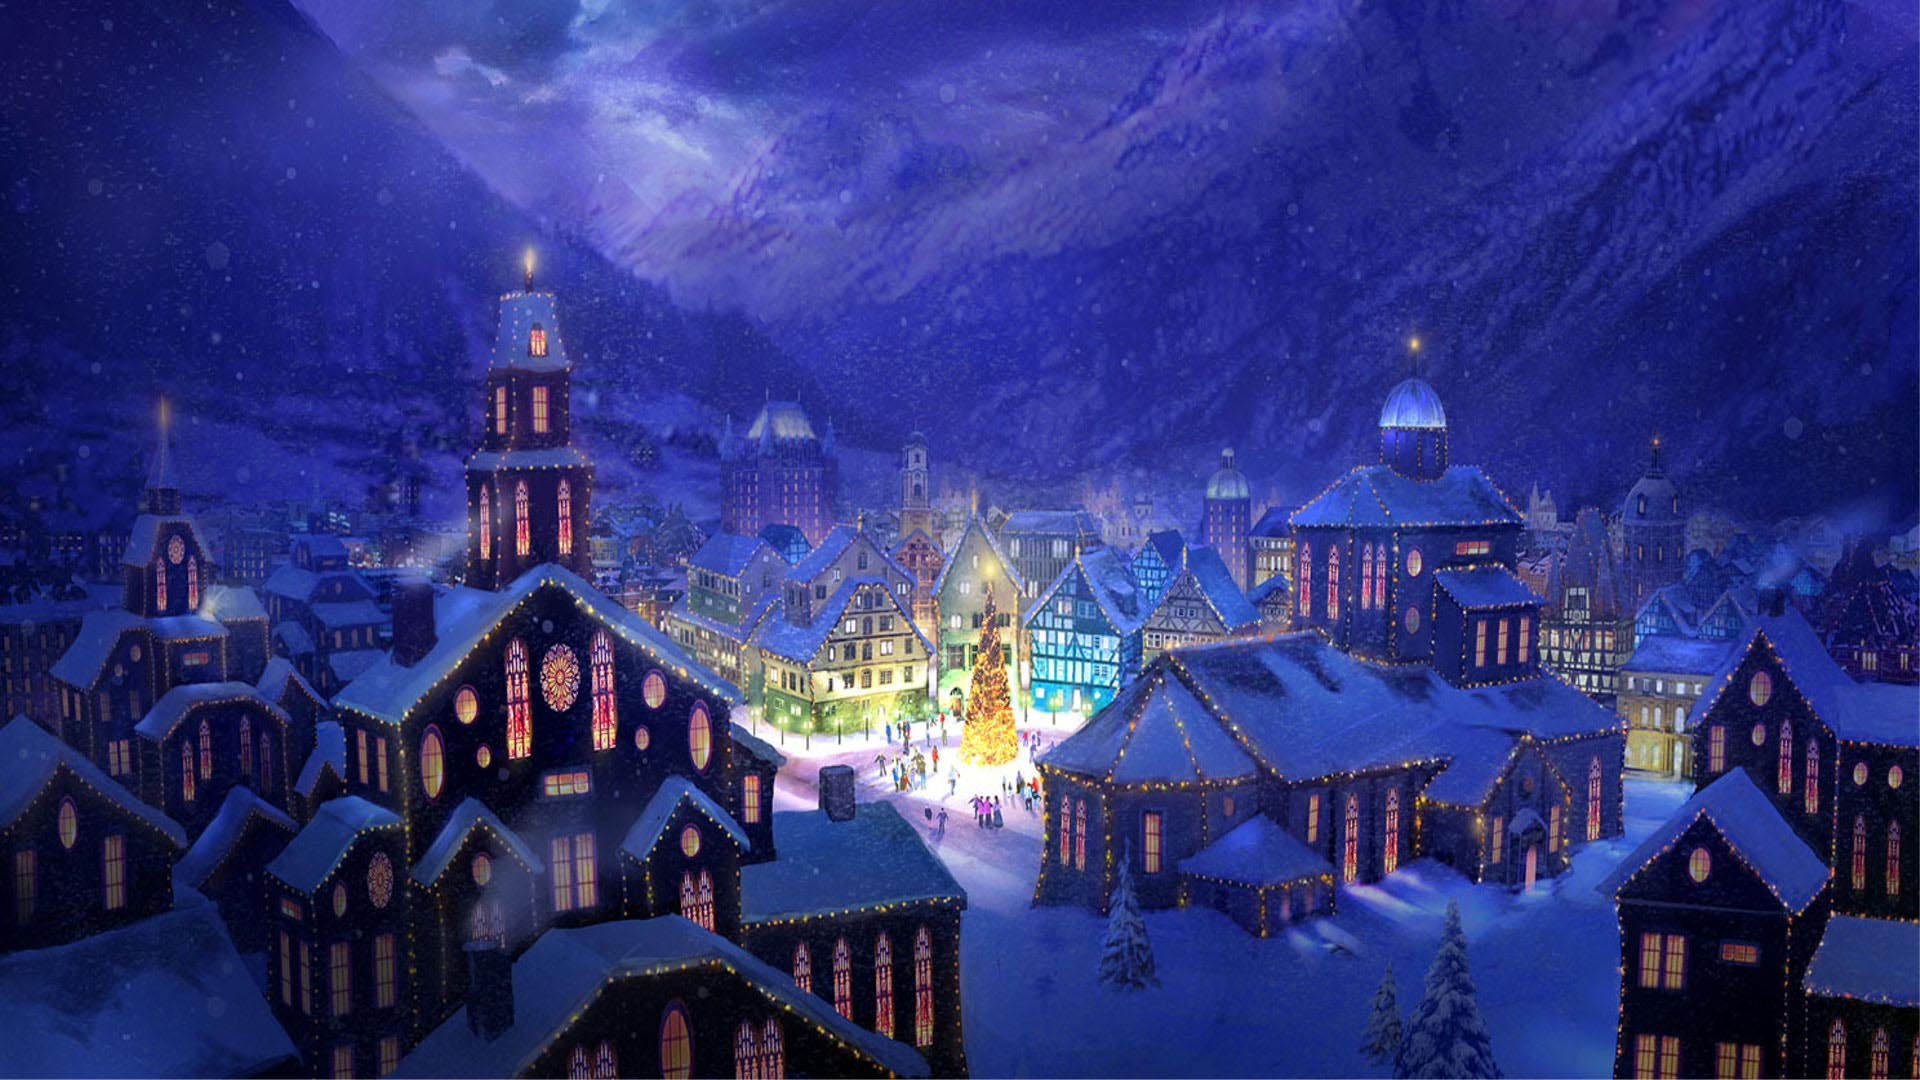 Christmas-Landscapes-Christmas-Village-Square-HD-%C2%BB-FullHDWpp-Full-HD-wallpaper-wpc5803465